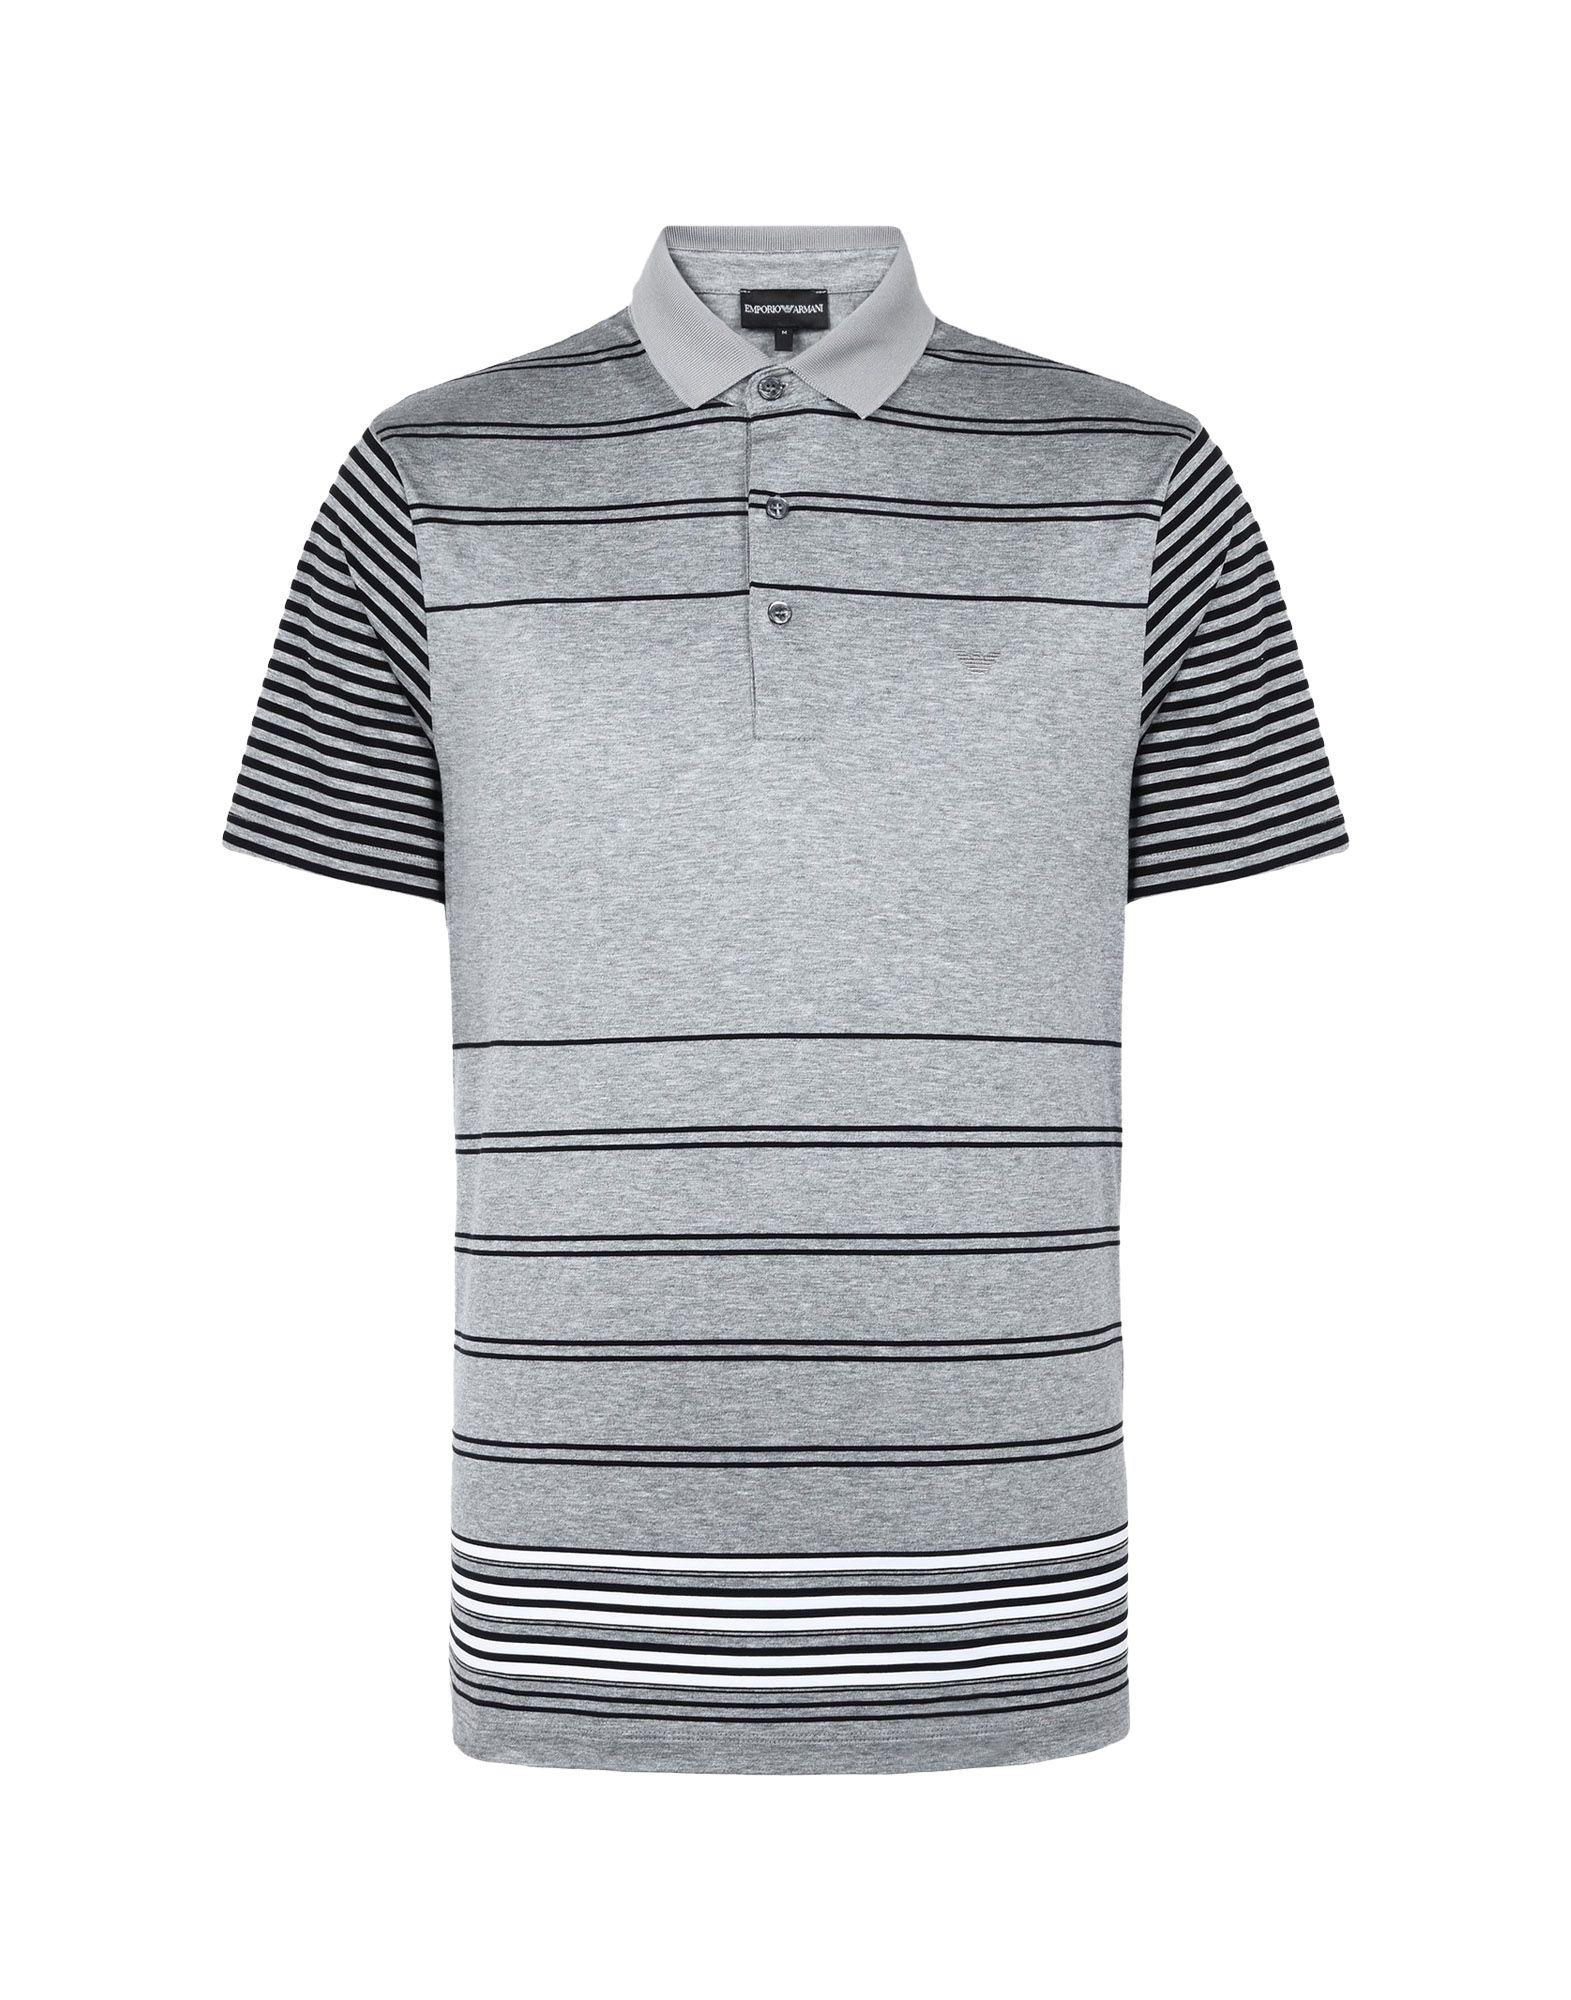 628c09244c1 Lyst - Emporio Armani Polo Shirt in Gray for Men